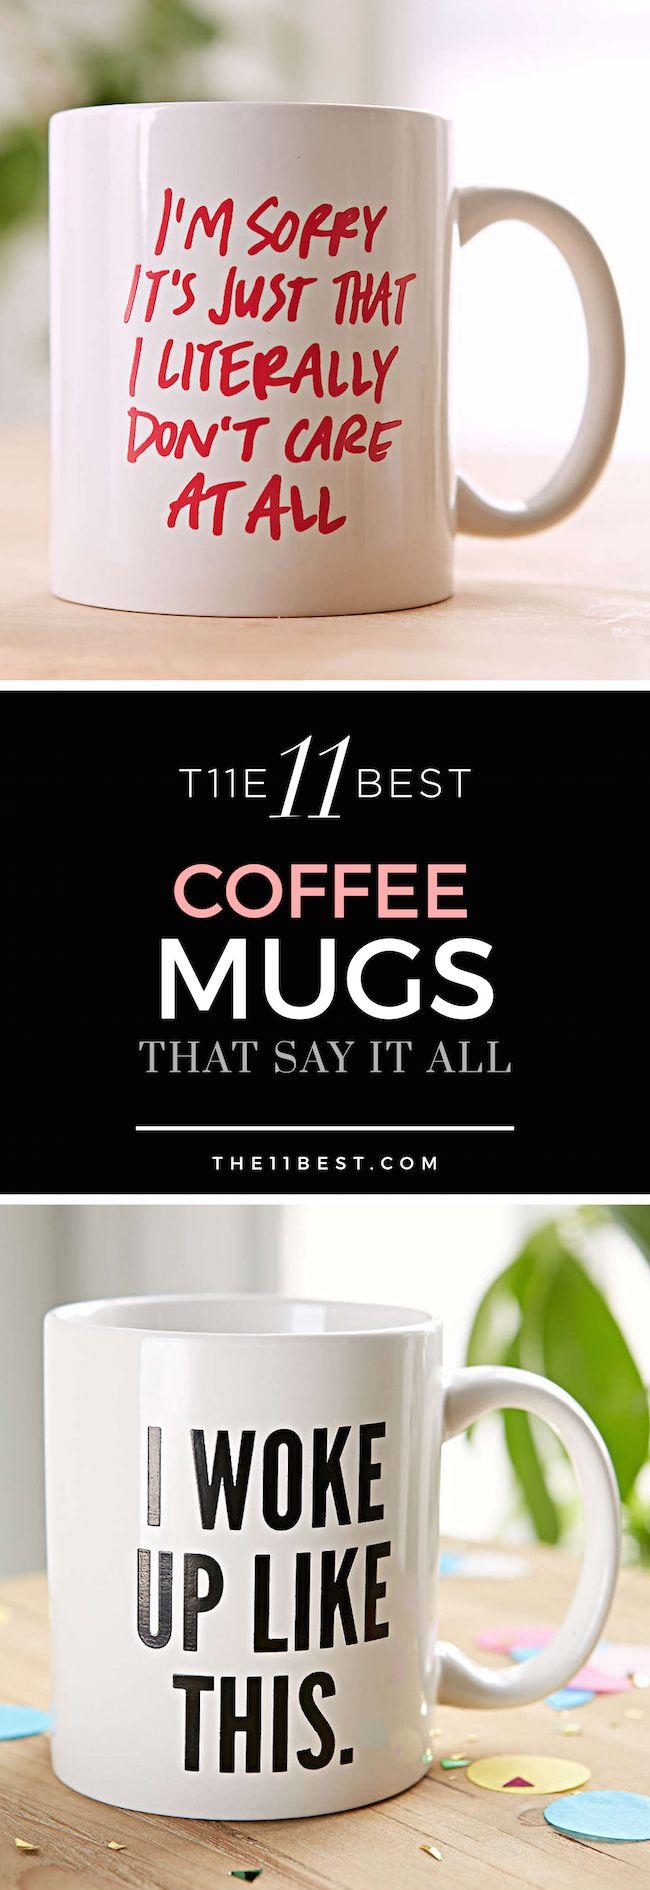 The 11 Best Coffee Mugs